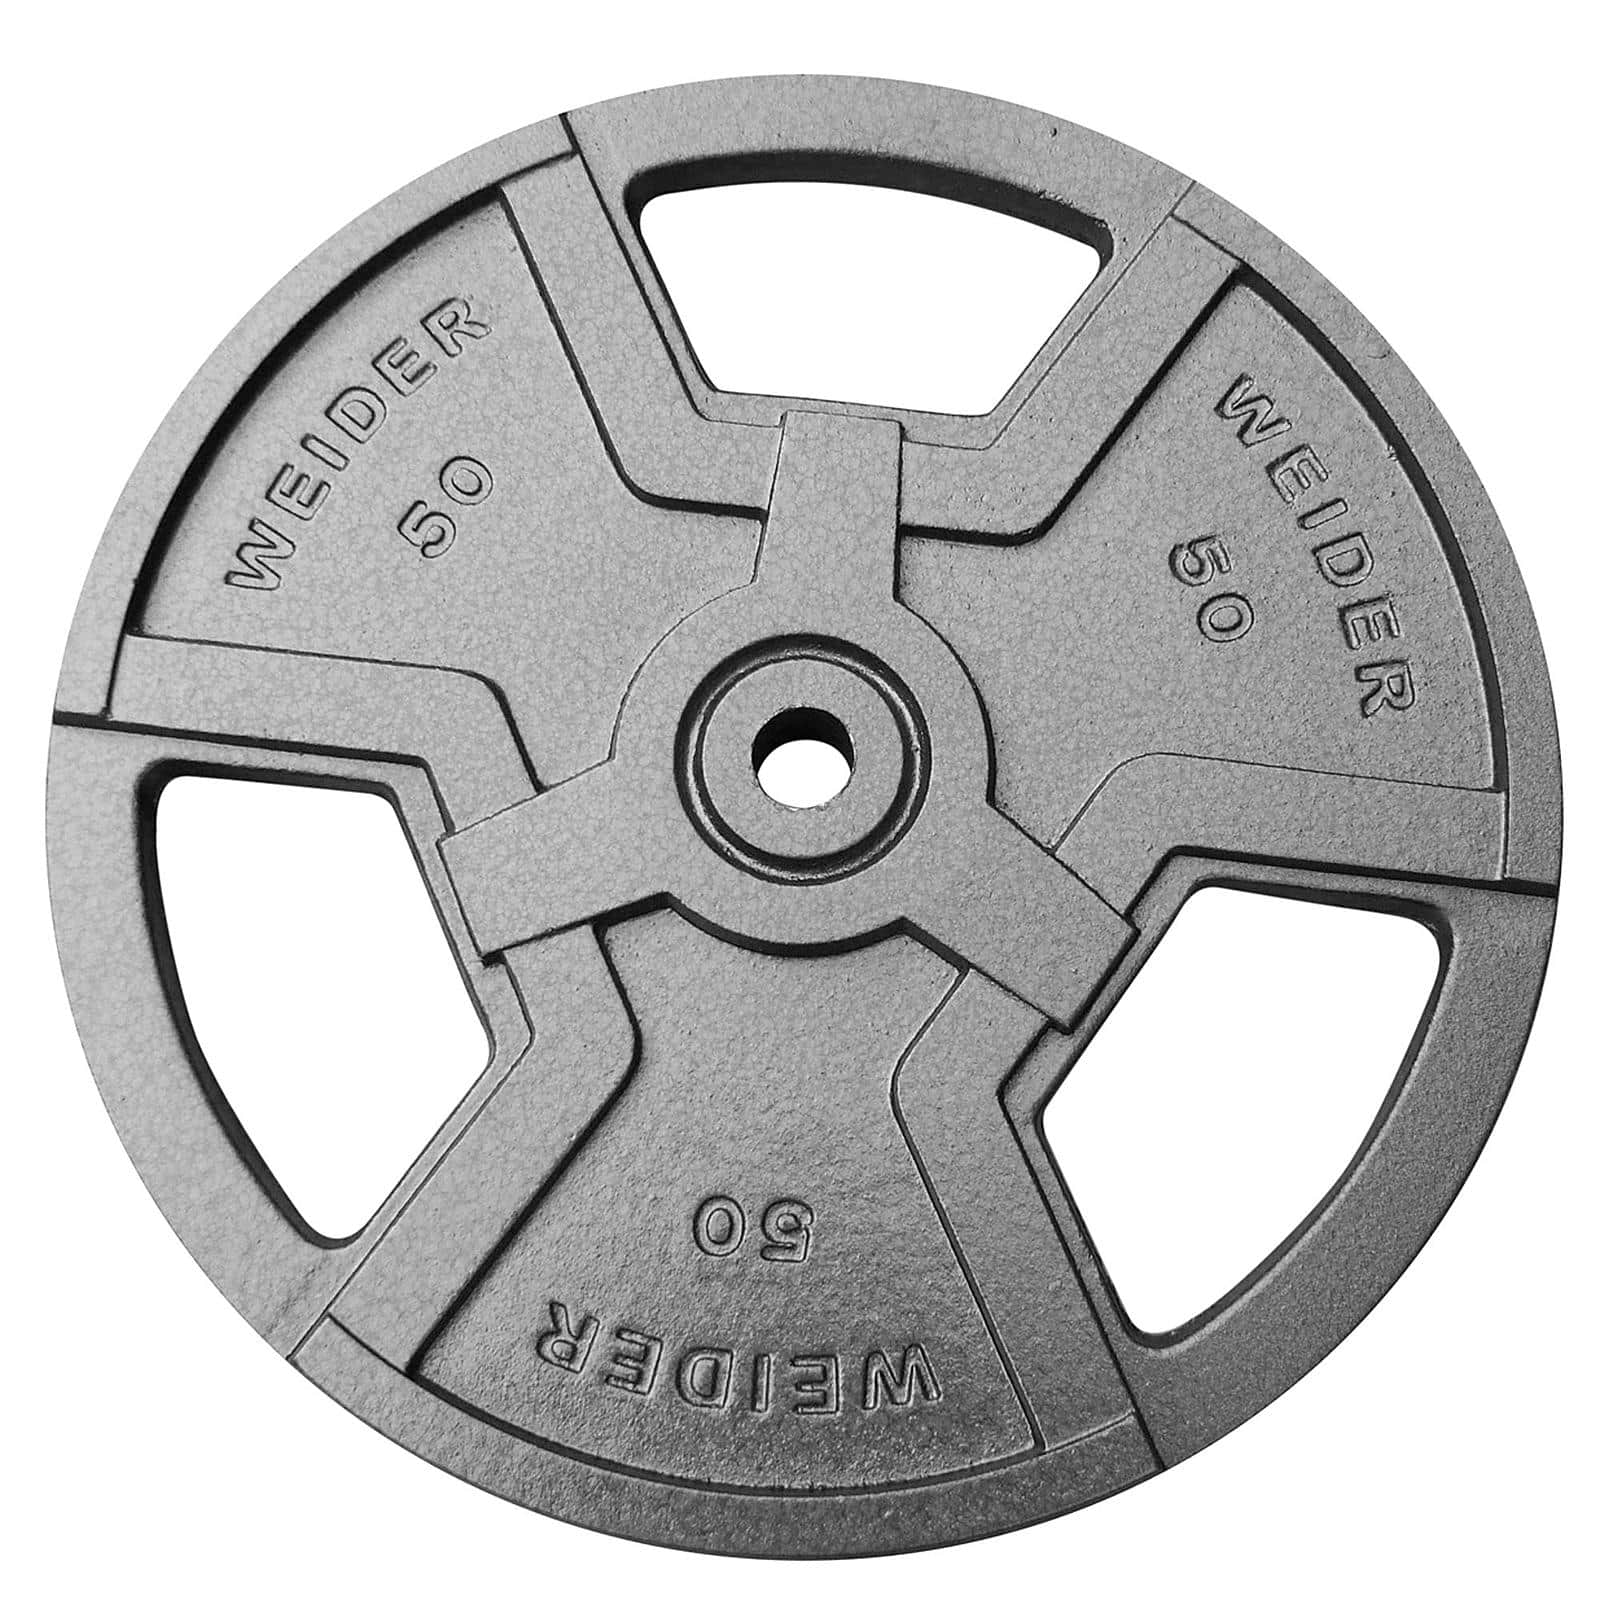 Weider 50 lb. Heavy Duty Weight Plate with Standard Handles $19.99